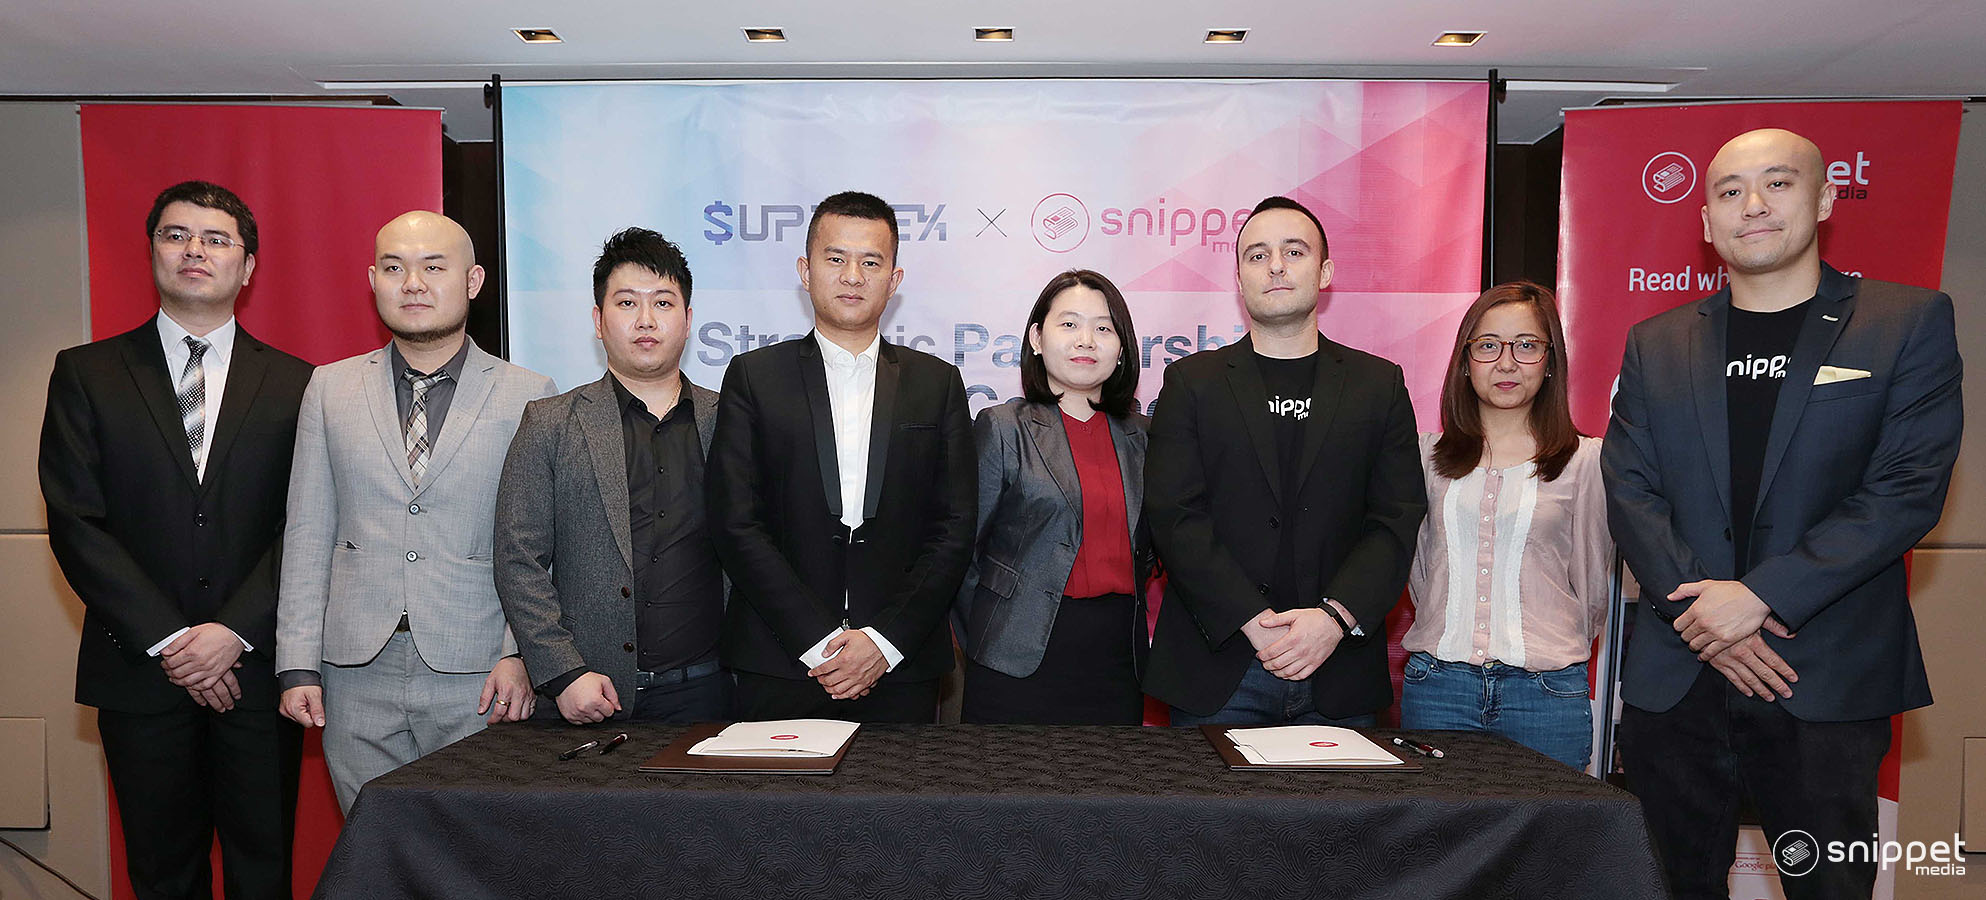 SnippetMEdia introduces blockchain technology in Philippine digital media landscape